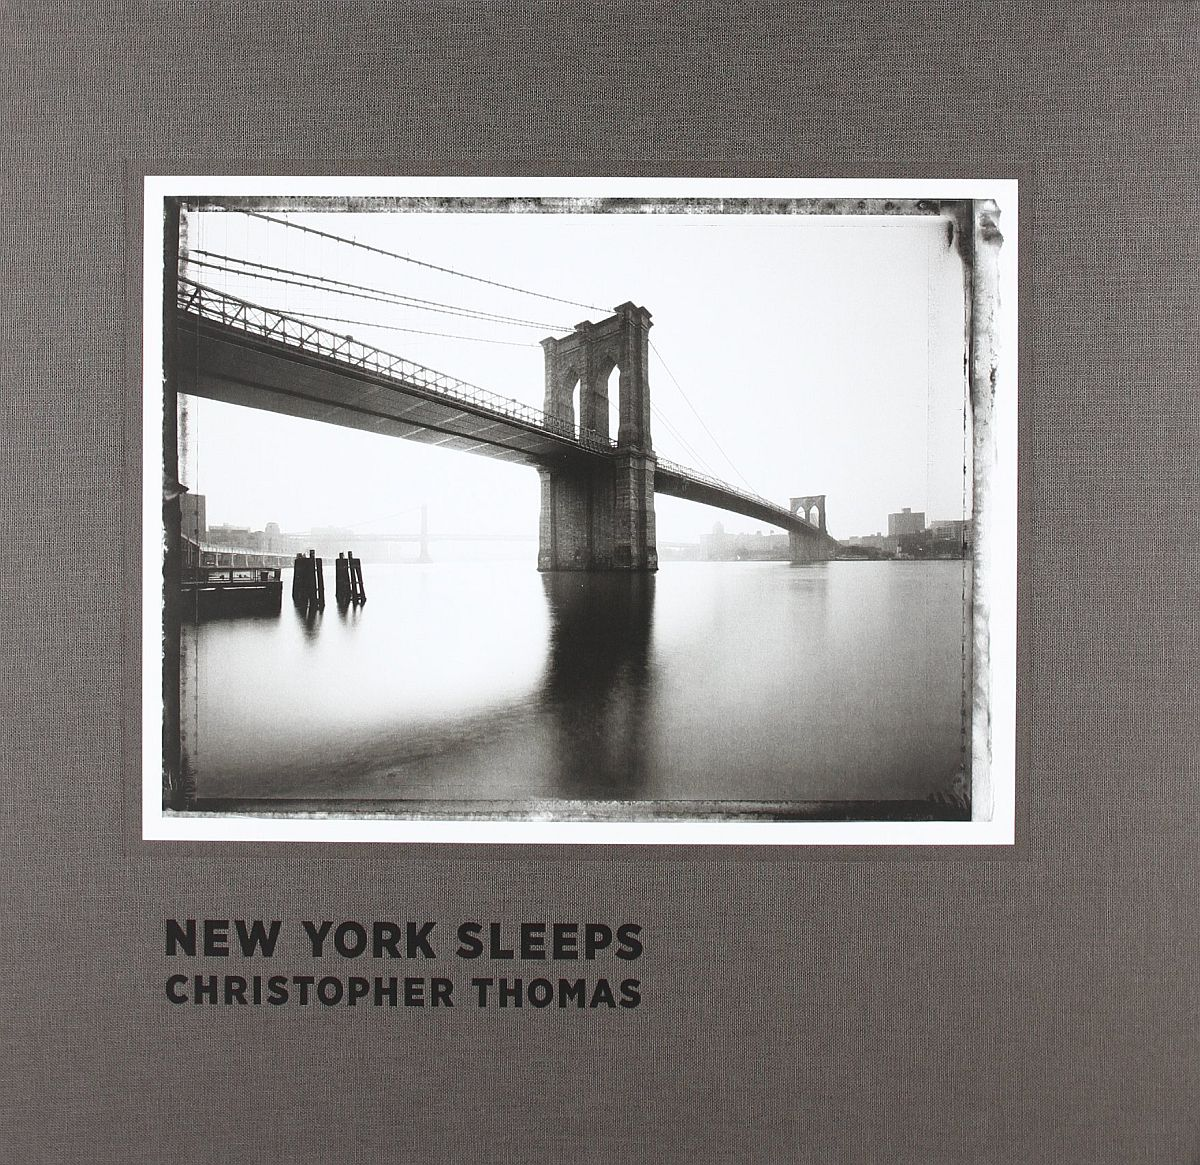 New York Sleeps © Christopher Thomas